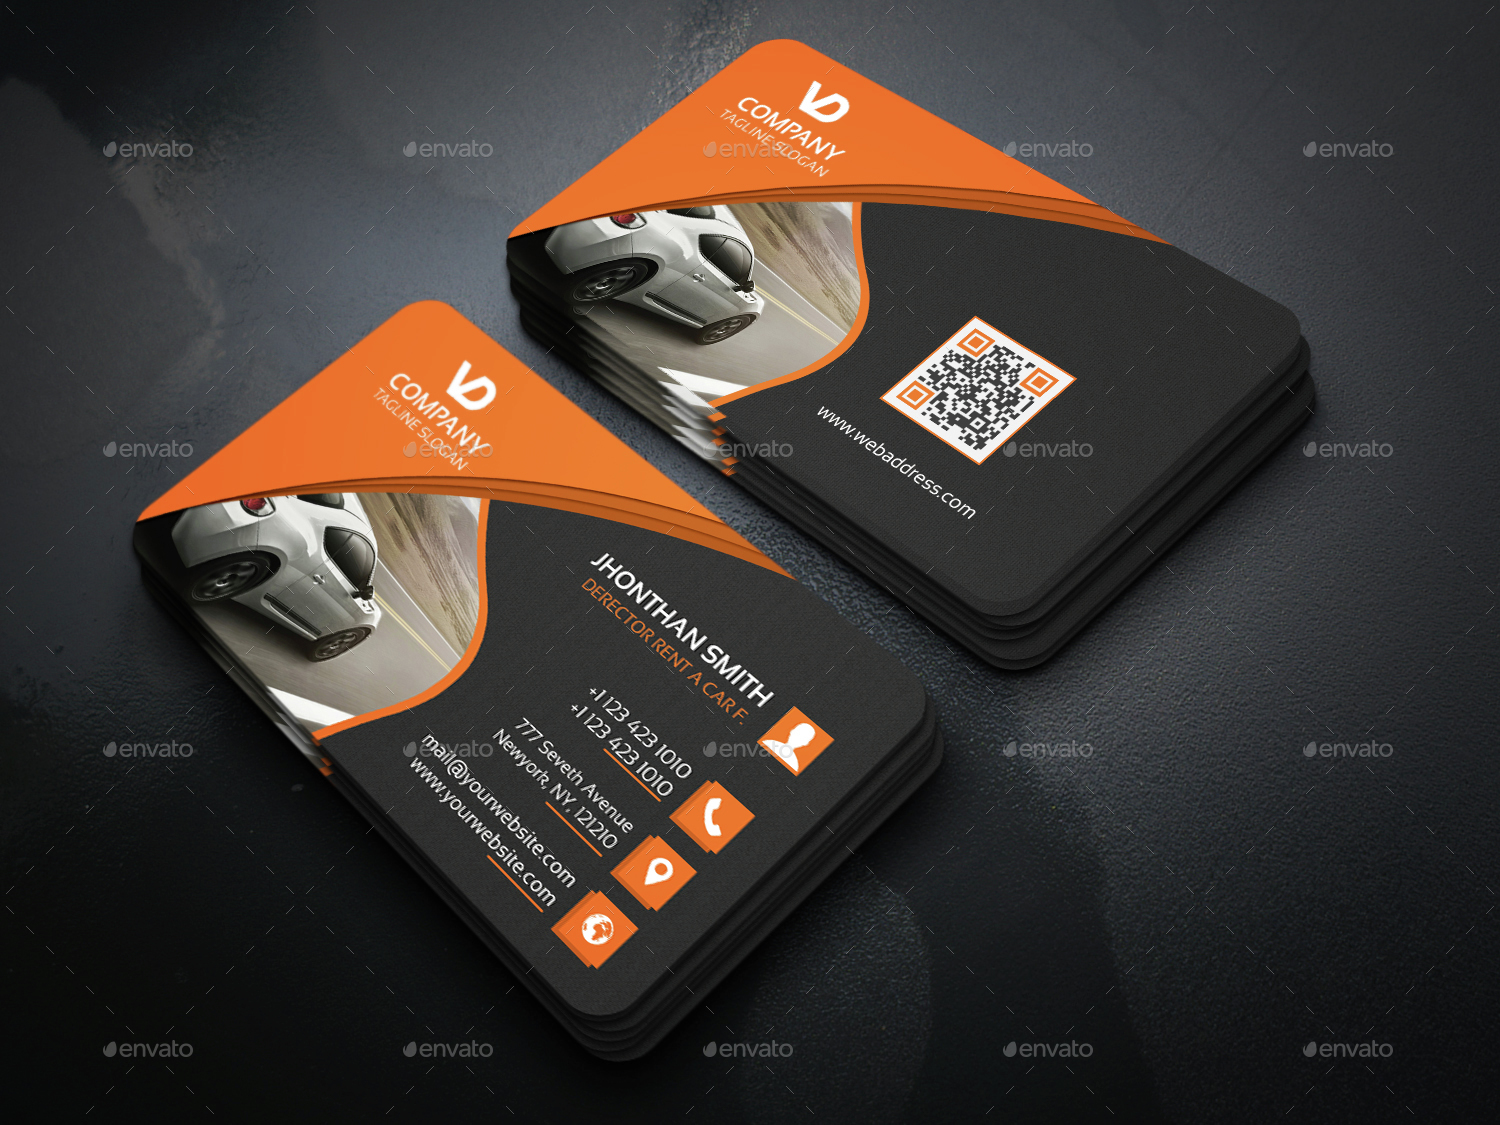 Sample Business Cards For Car Rental Image collections - Card Design ...